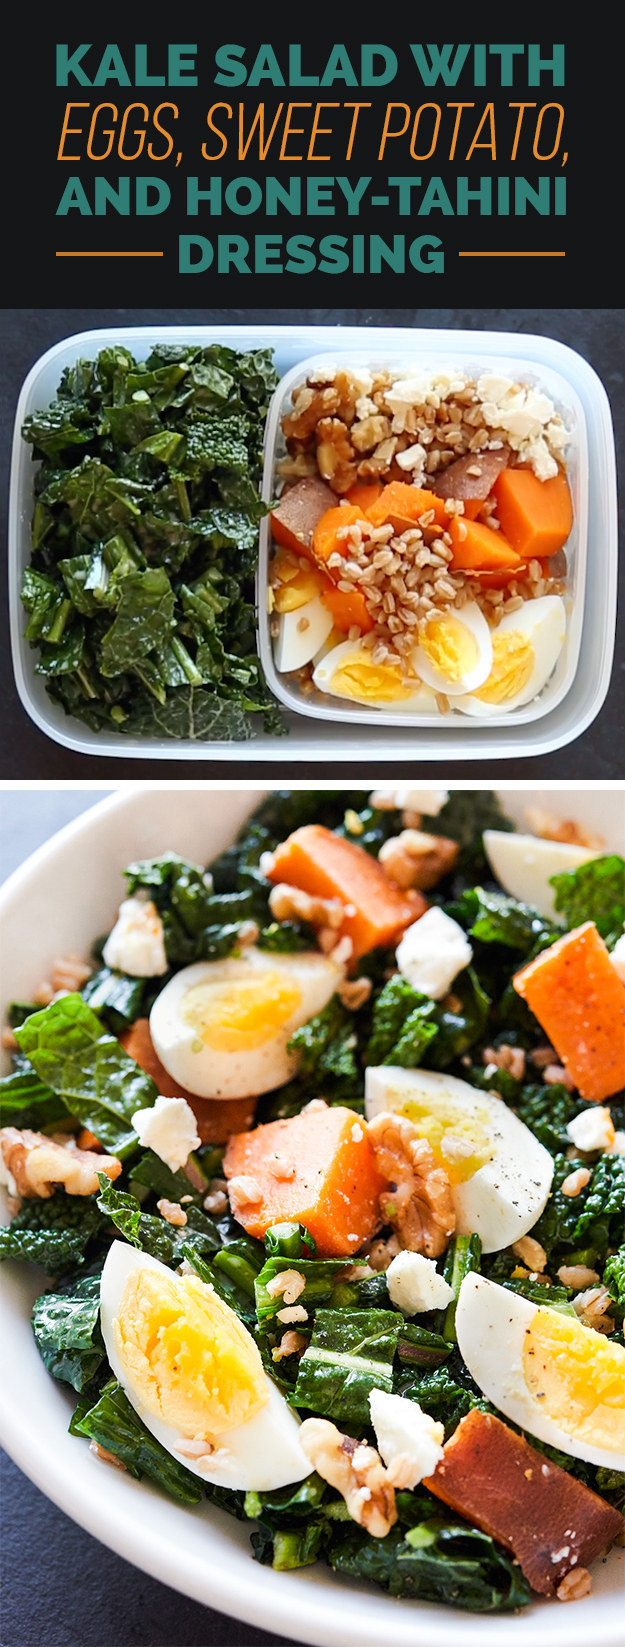 Buzzfeed Healthy Lunches  Here s Exactly How To Meal Prep For Lunch This Week